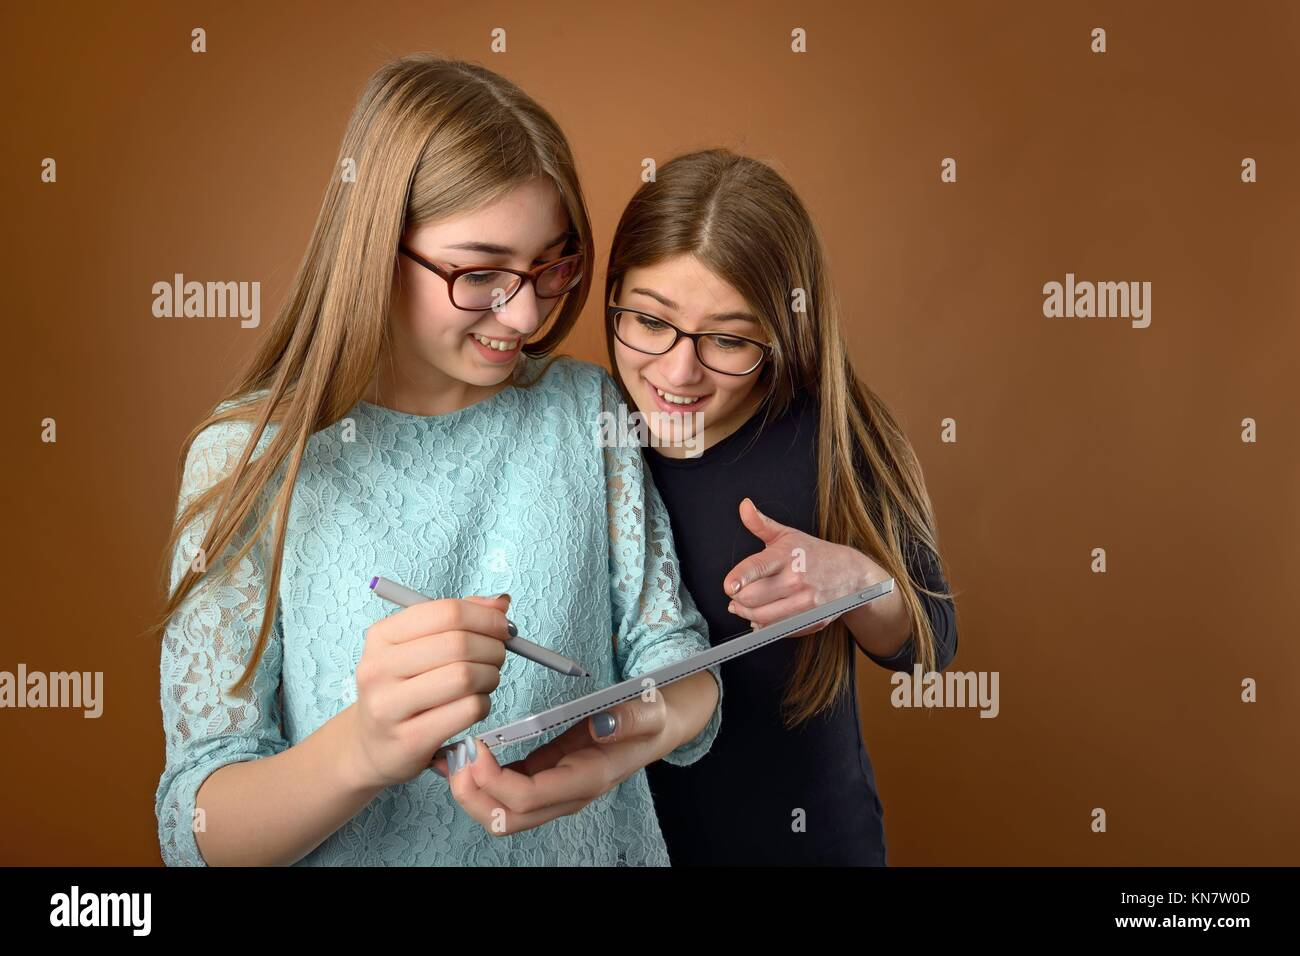 Two teen young friends using a computer tablet. - Stock Image